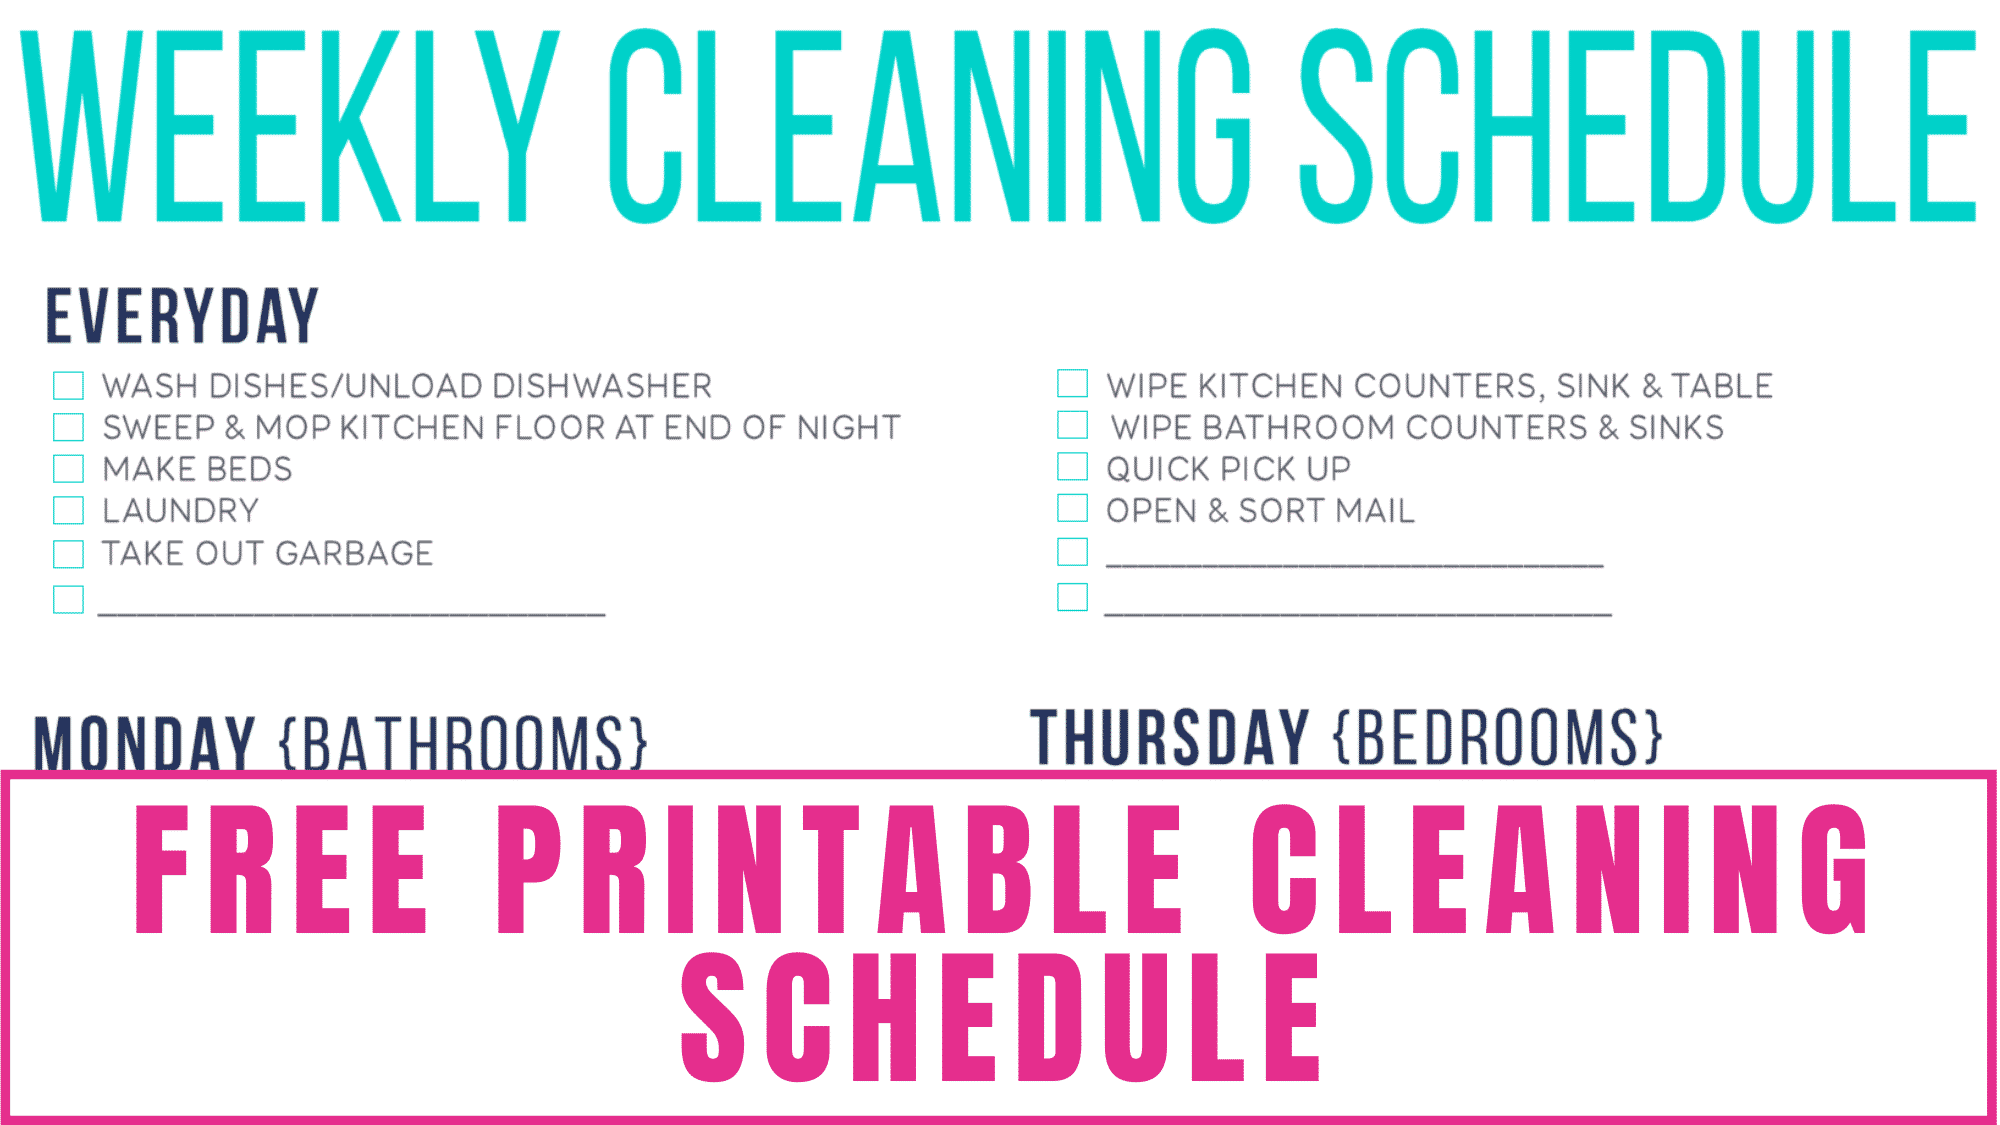 Need help figuring out when to do which cleaning task? This free printable cleaning schedule can help! It lists everyday cleaning responsibilities along with daily tasks by day so you don't get overwhelmed on any one day.